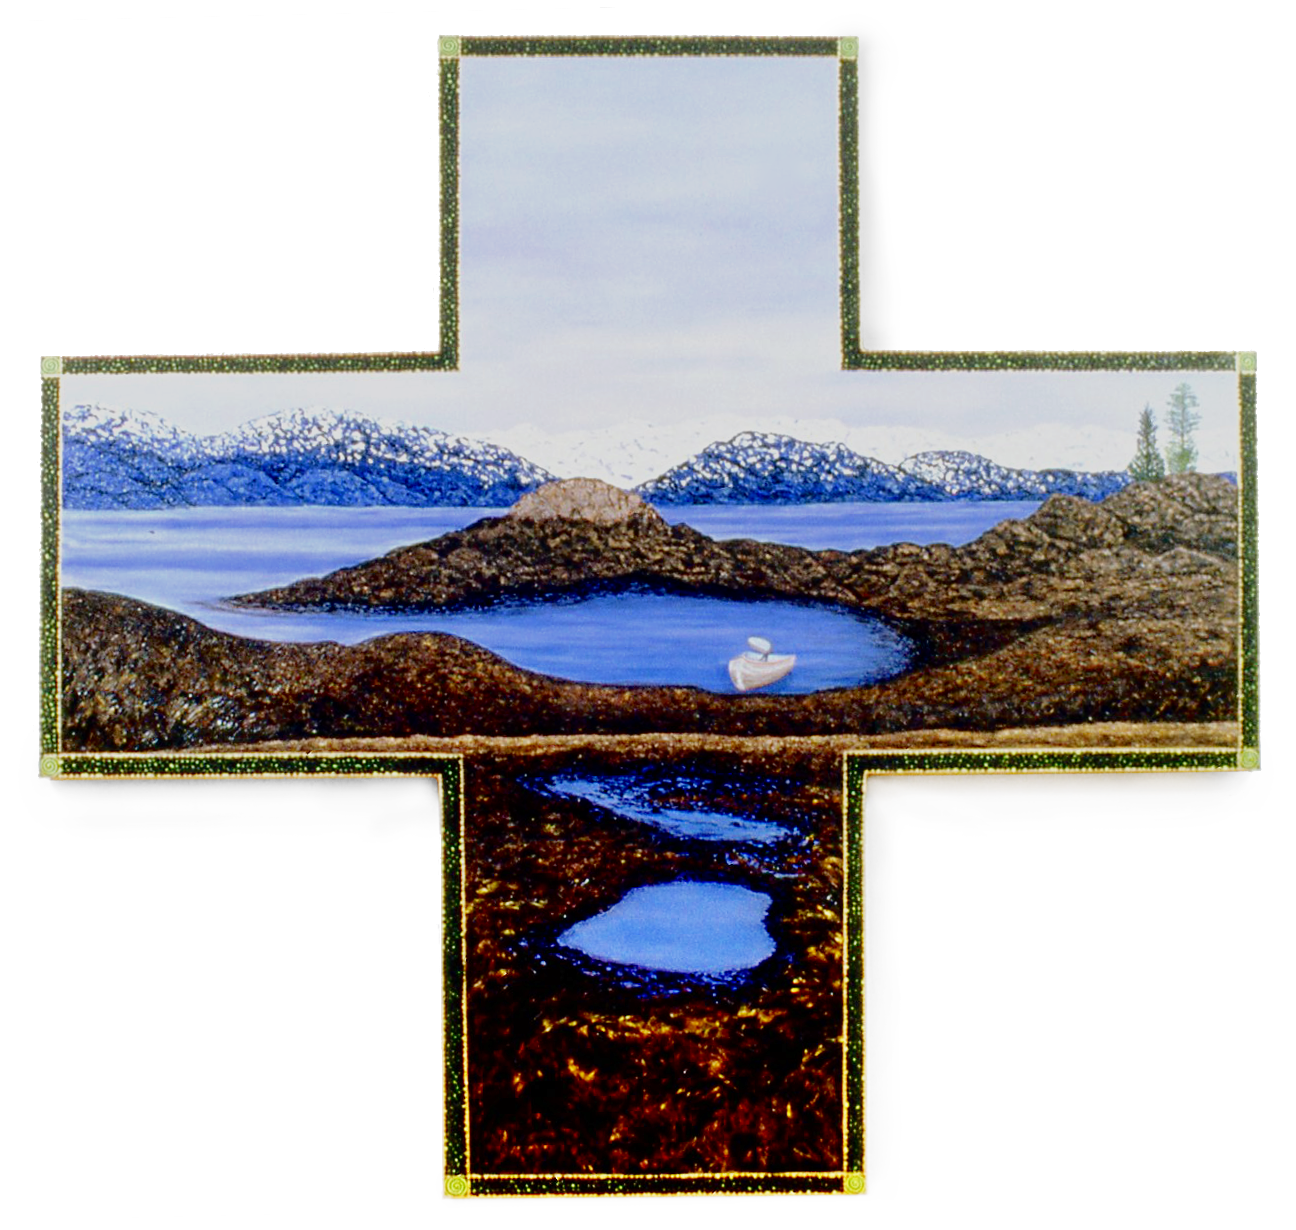 Oil Spill, oil on shaped canvas, 80x84 (1995)